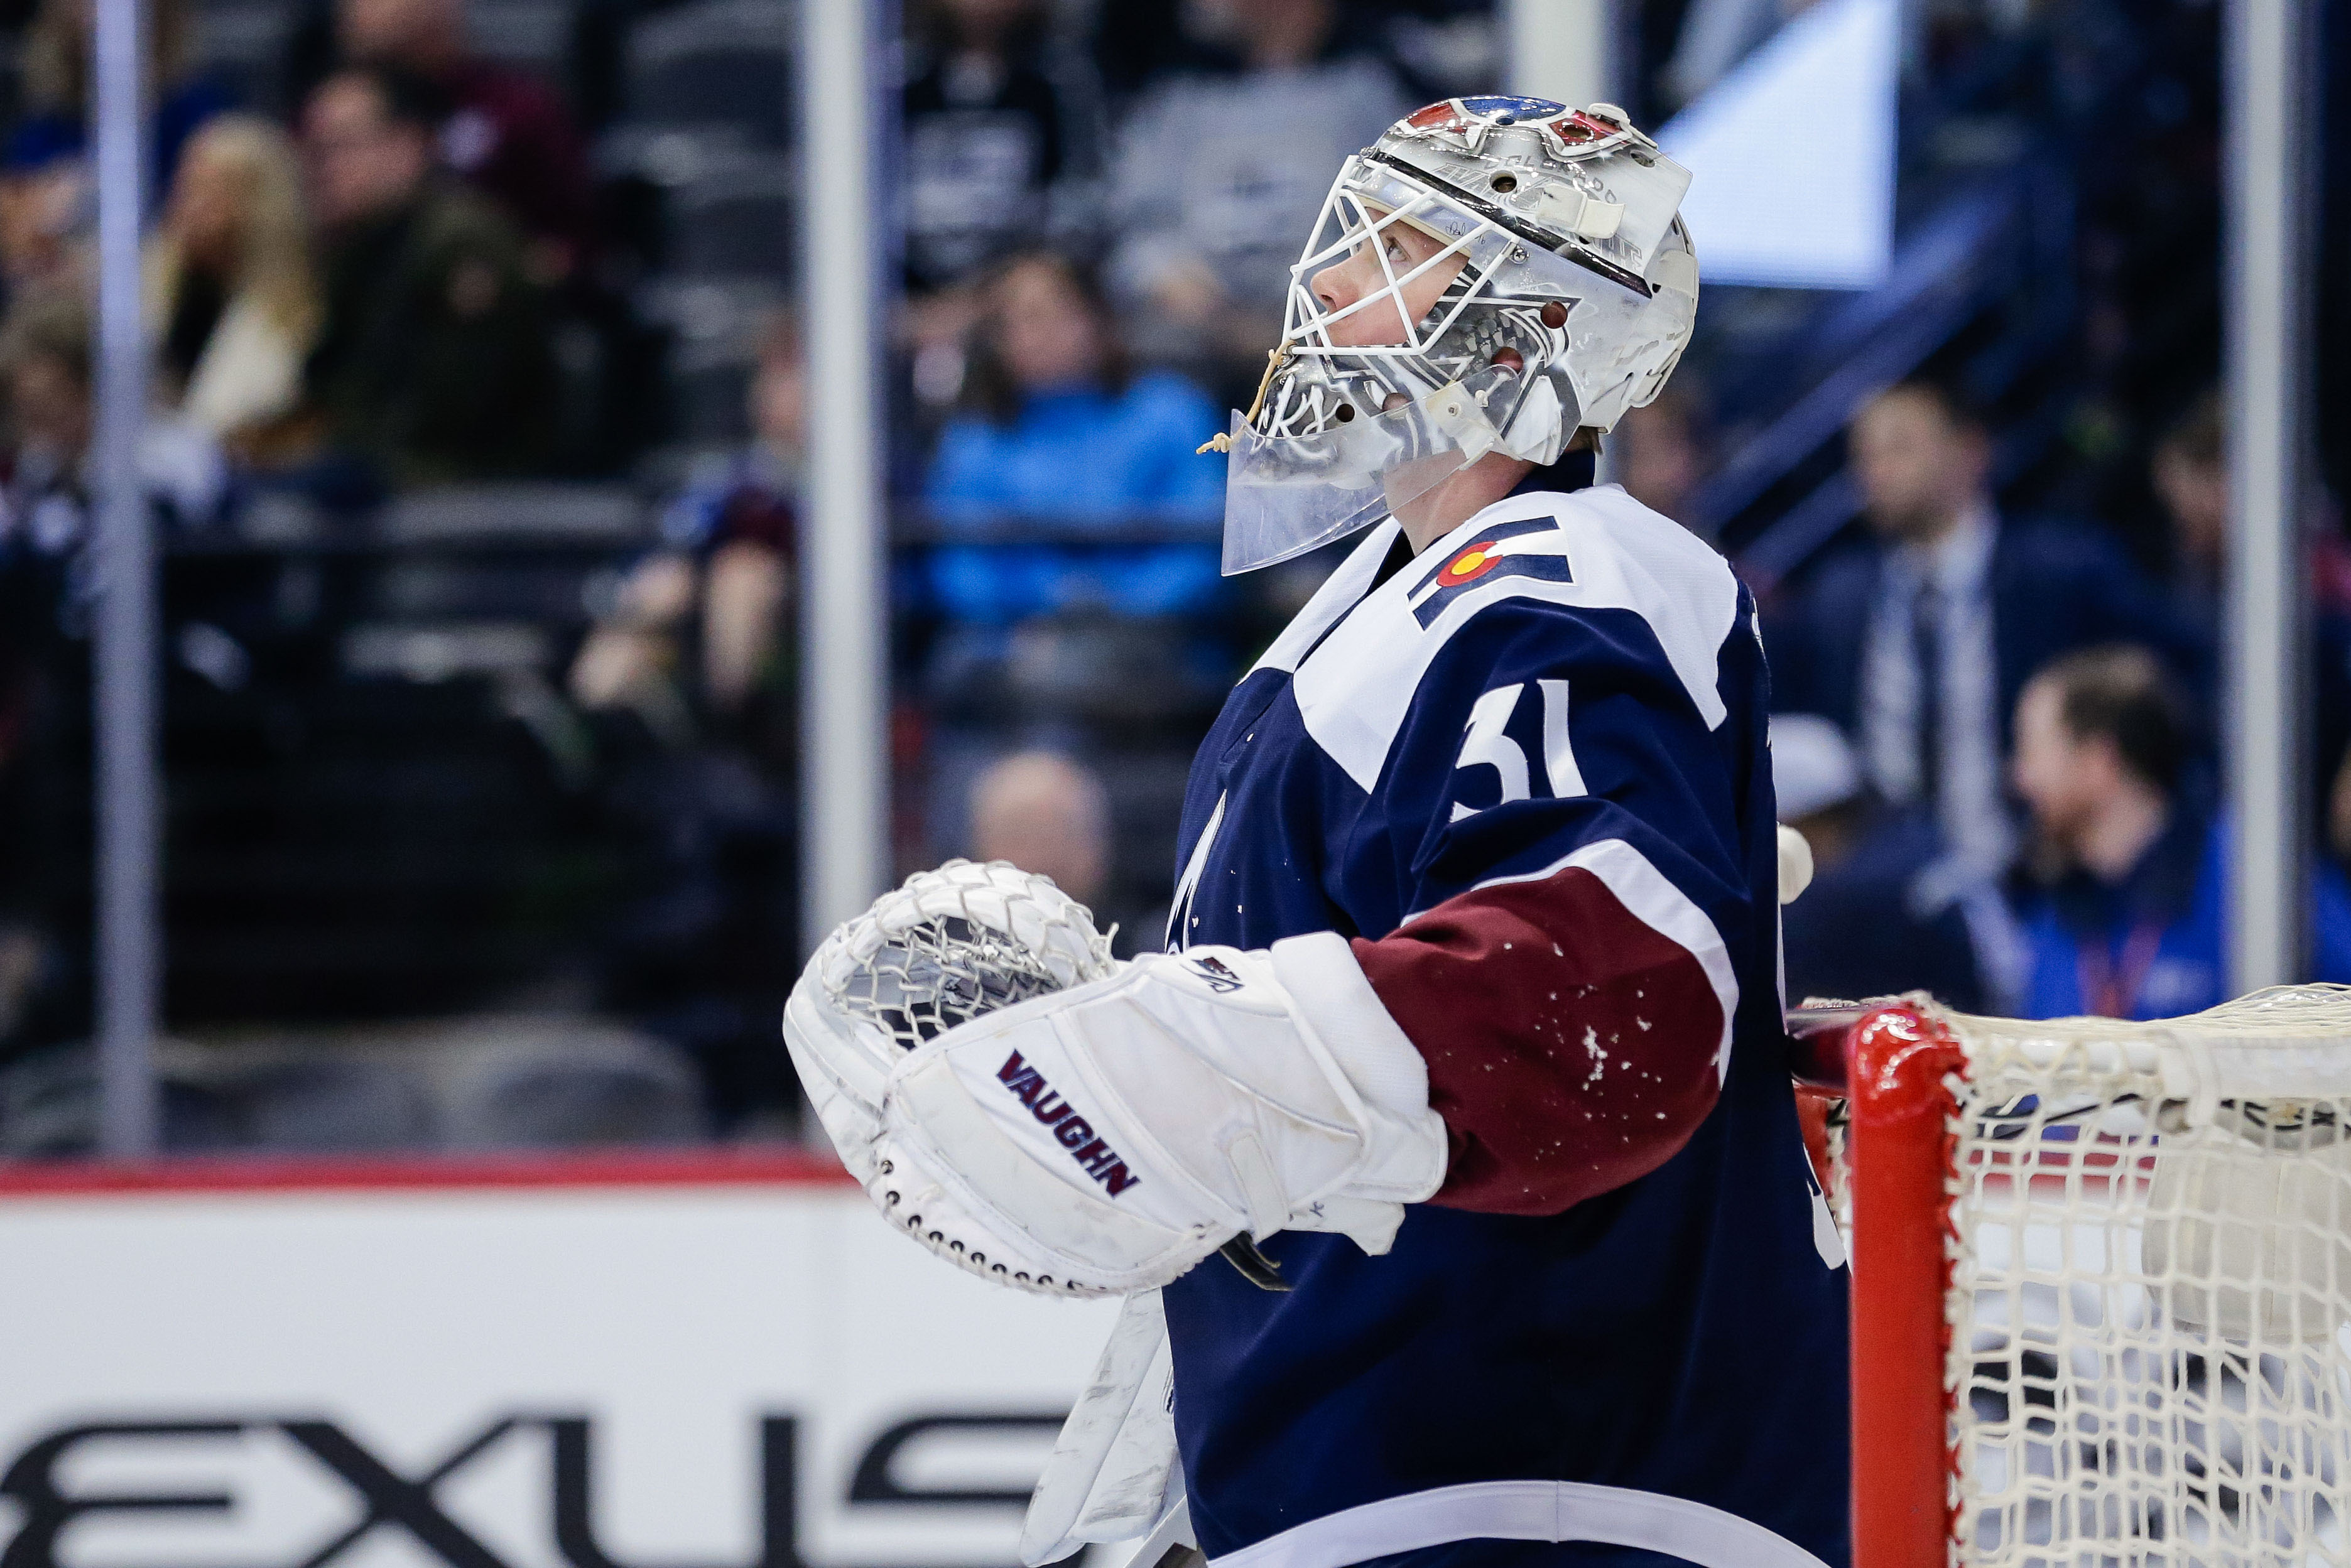 9939459-nhl-los-angeles-kings-at-colorado-avalanche